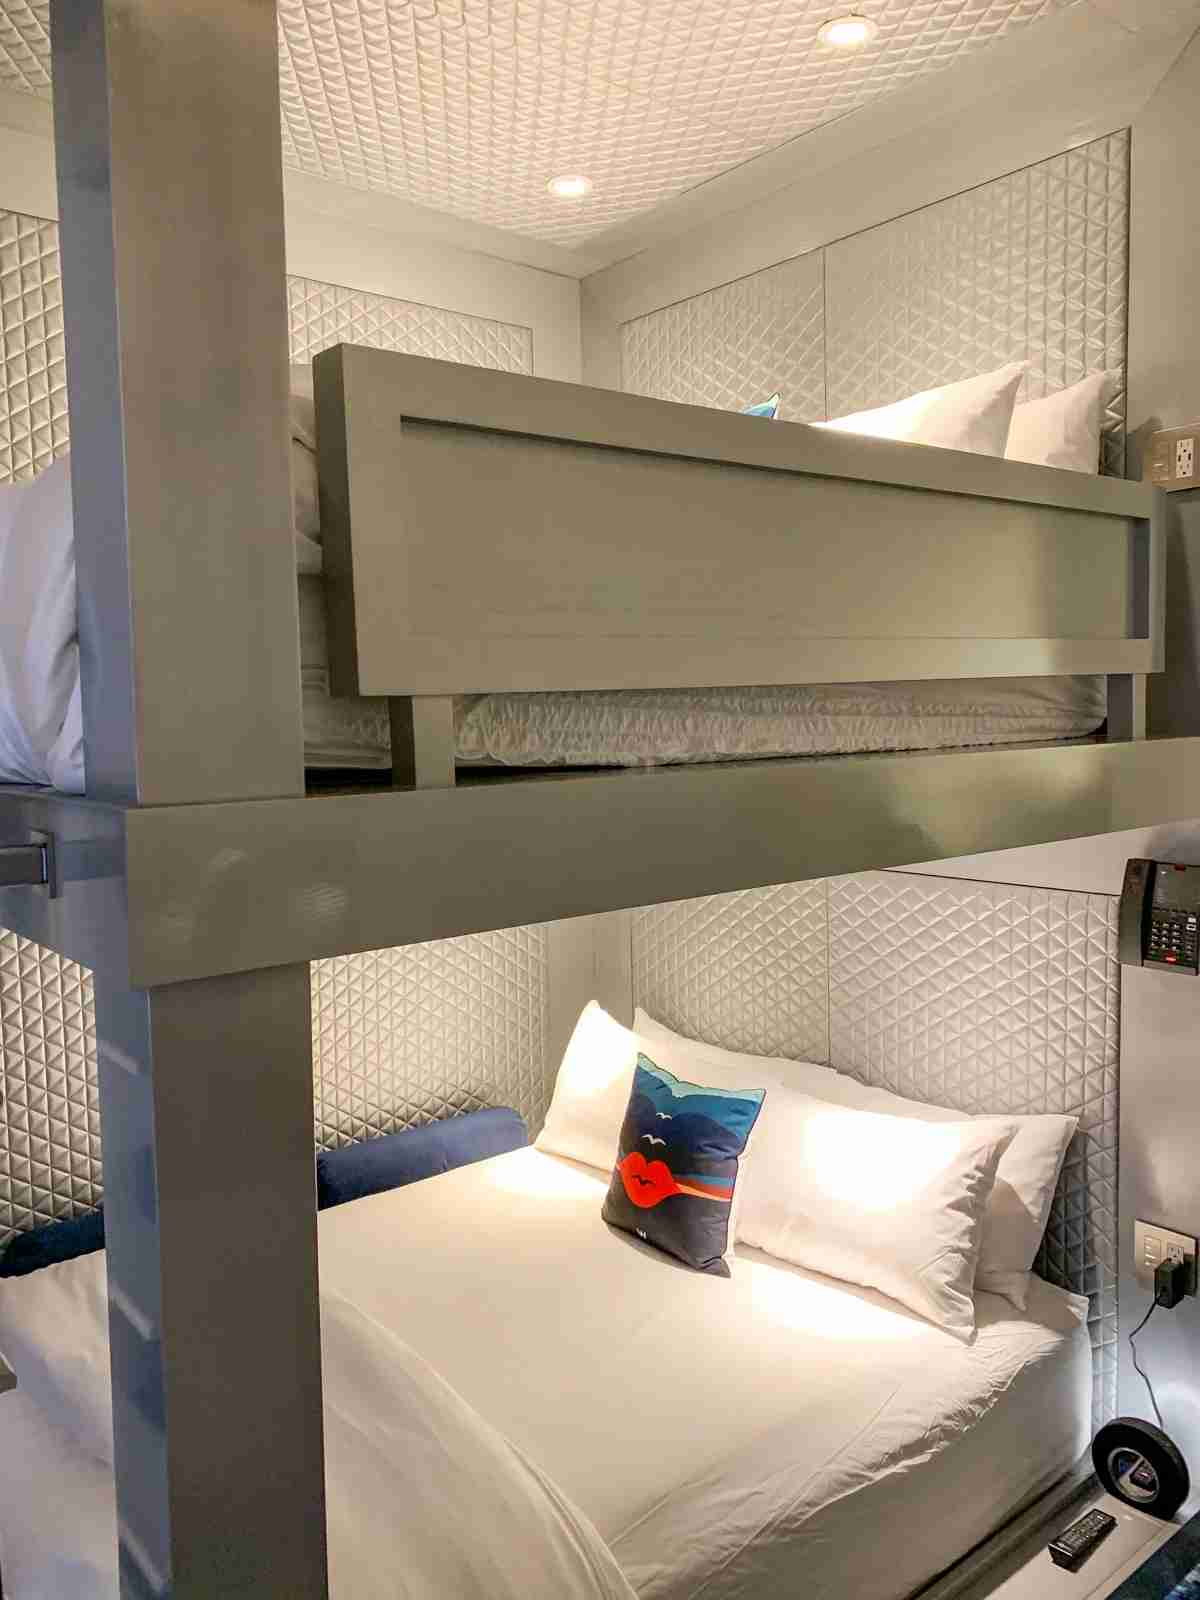 Bunk beds at the W Aspen (Photo by Summer Hull/The Points Guy)